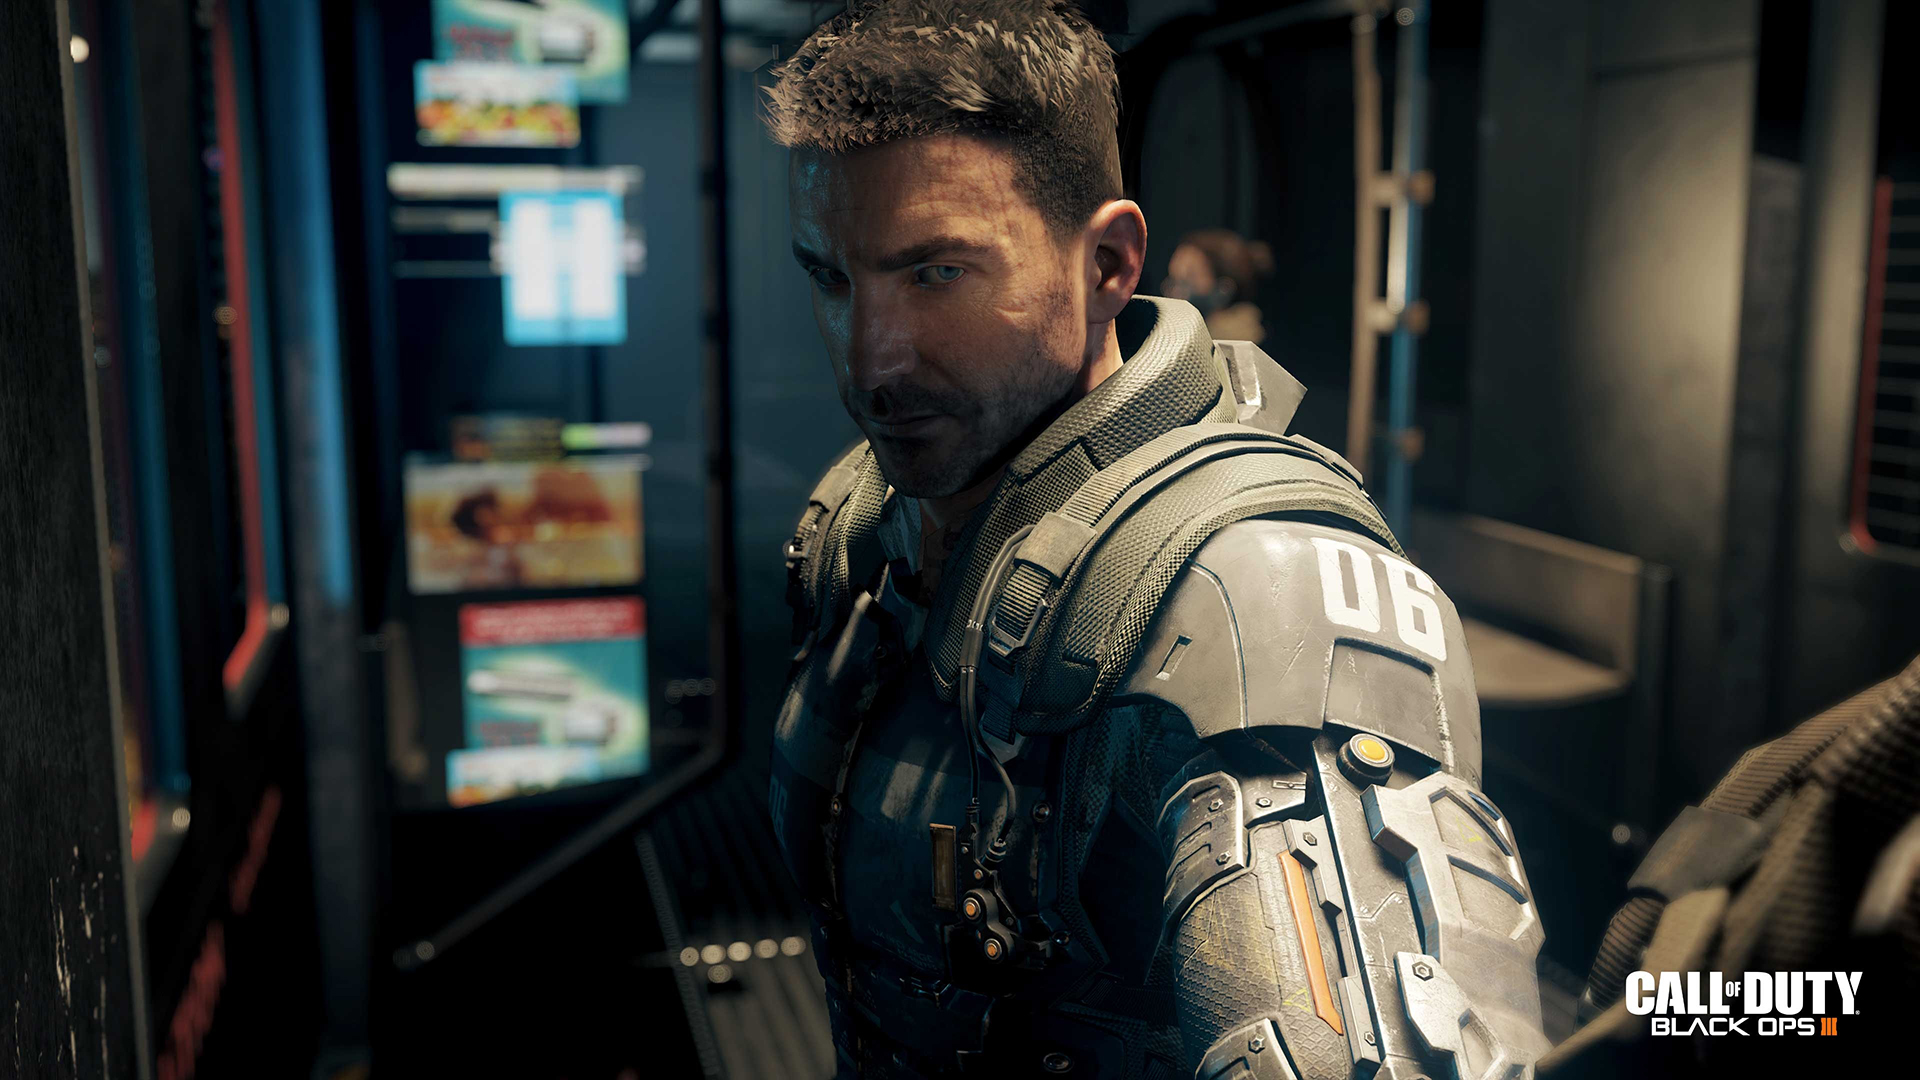 Call Of Duty: Black Ops 3 Screenshots Introduce Super-Soldiers And Robots  #32760